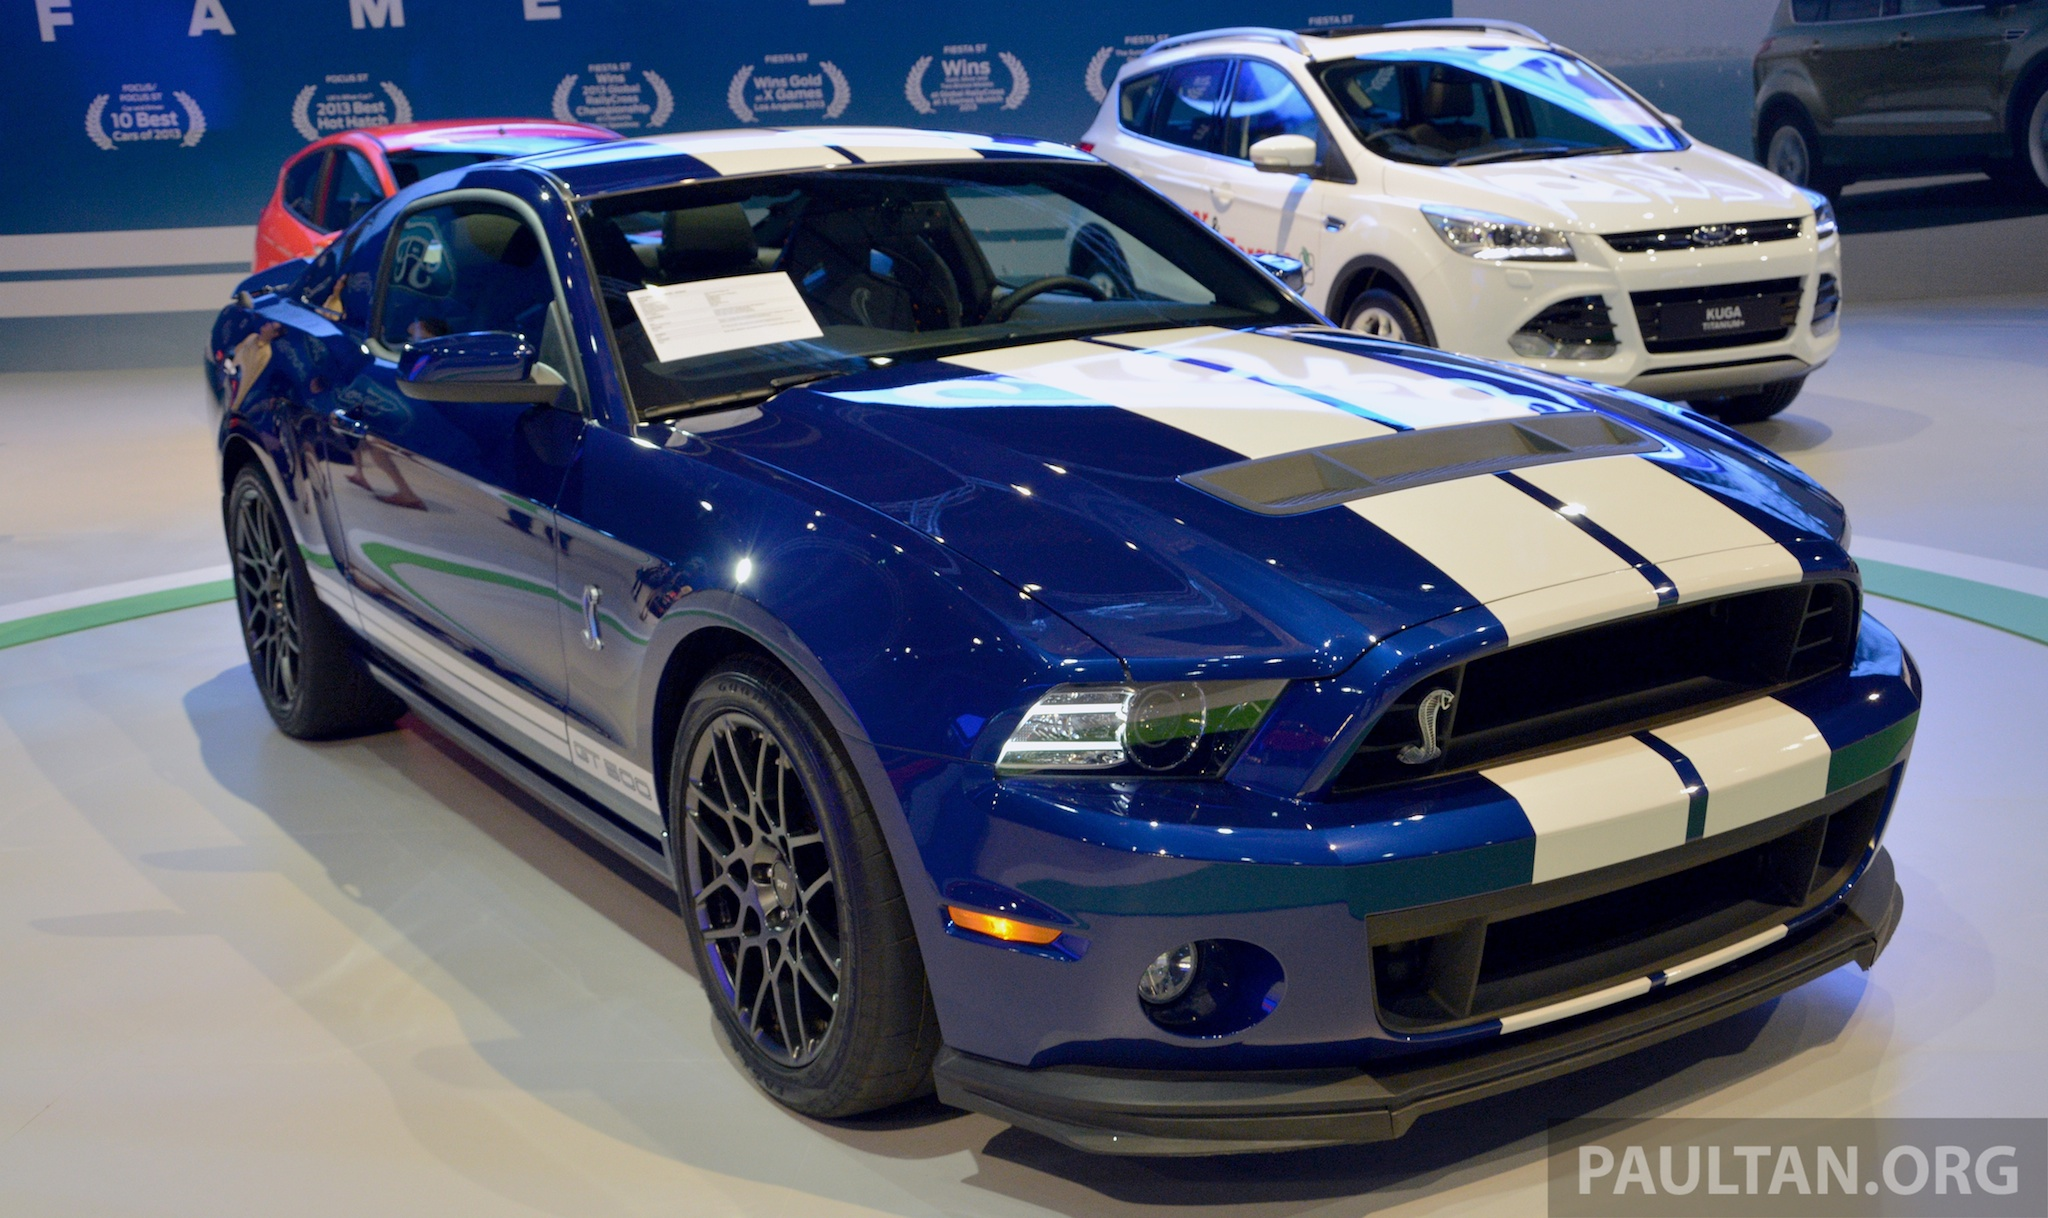 Ford Mustang Shelby GT500 shown at KLIMS13 Paul Tan Image